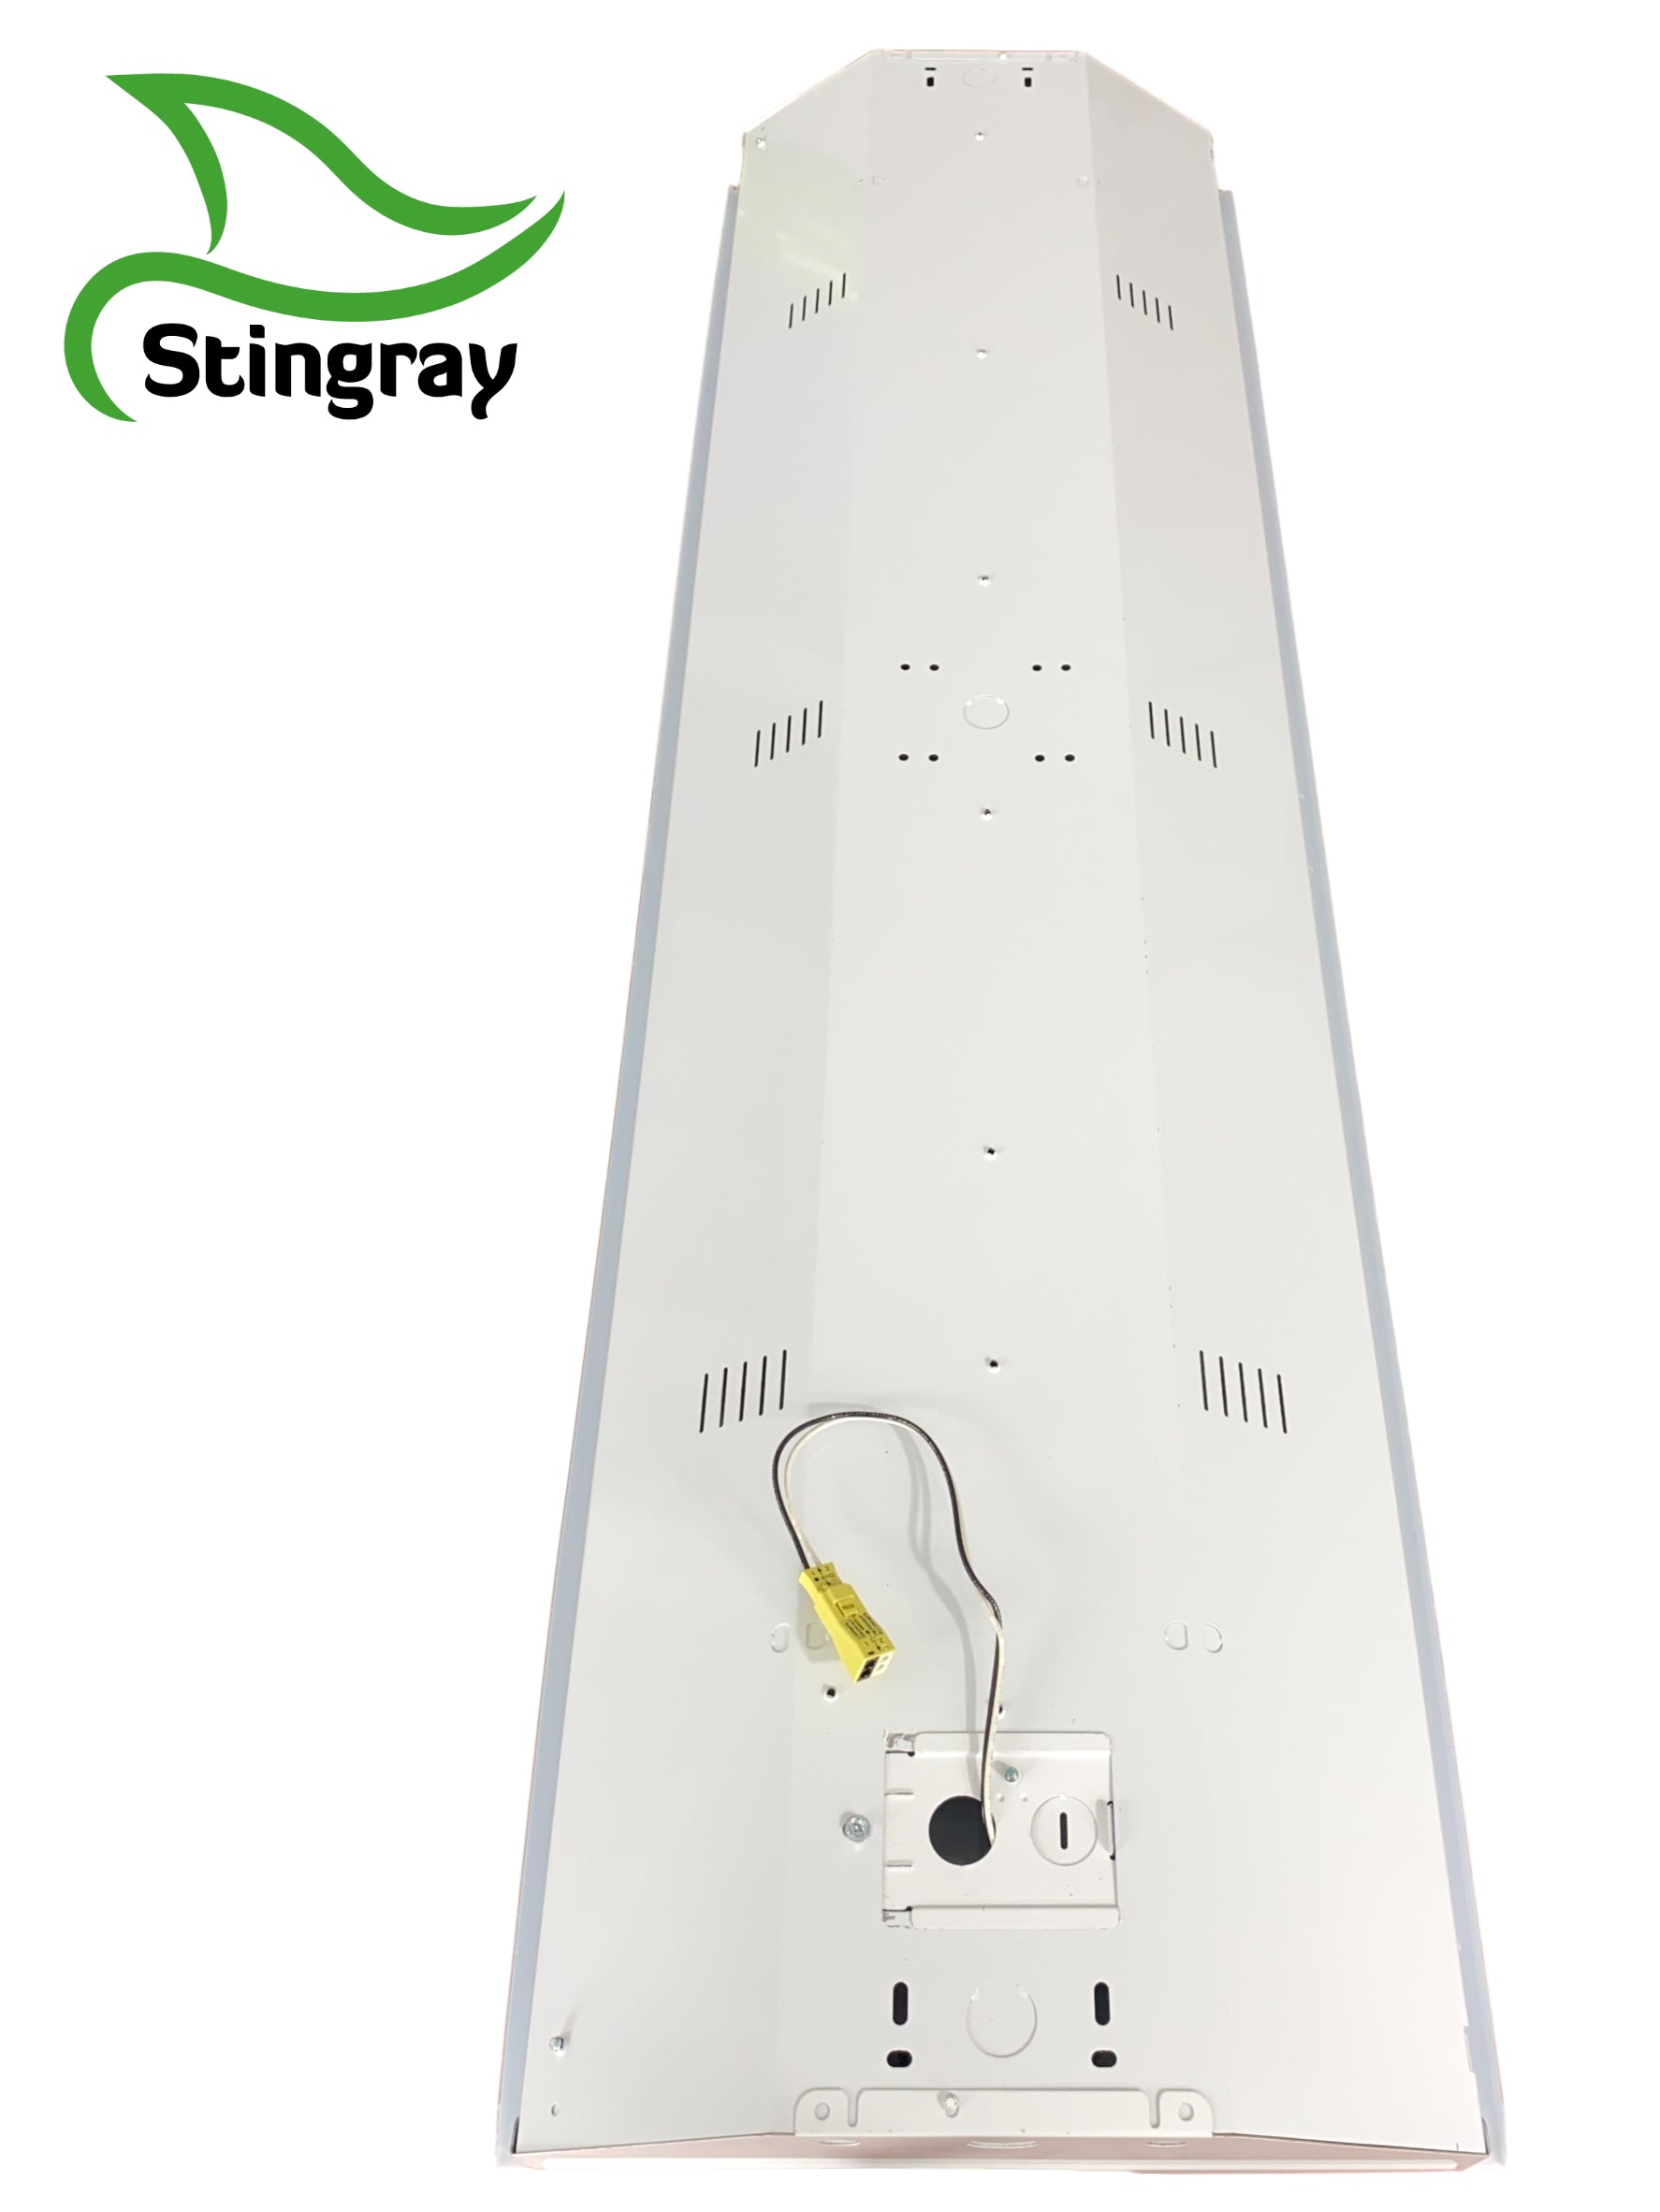 LED StingRay 4 XL MOTION ACTIVATED Shop Light (CLEAR LED)